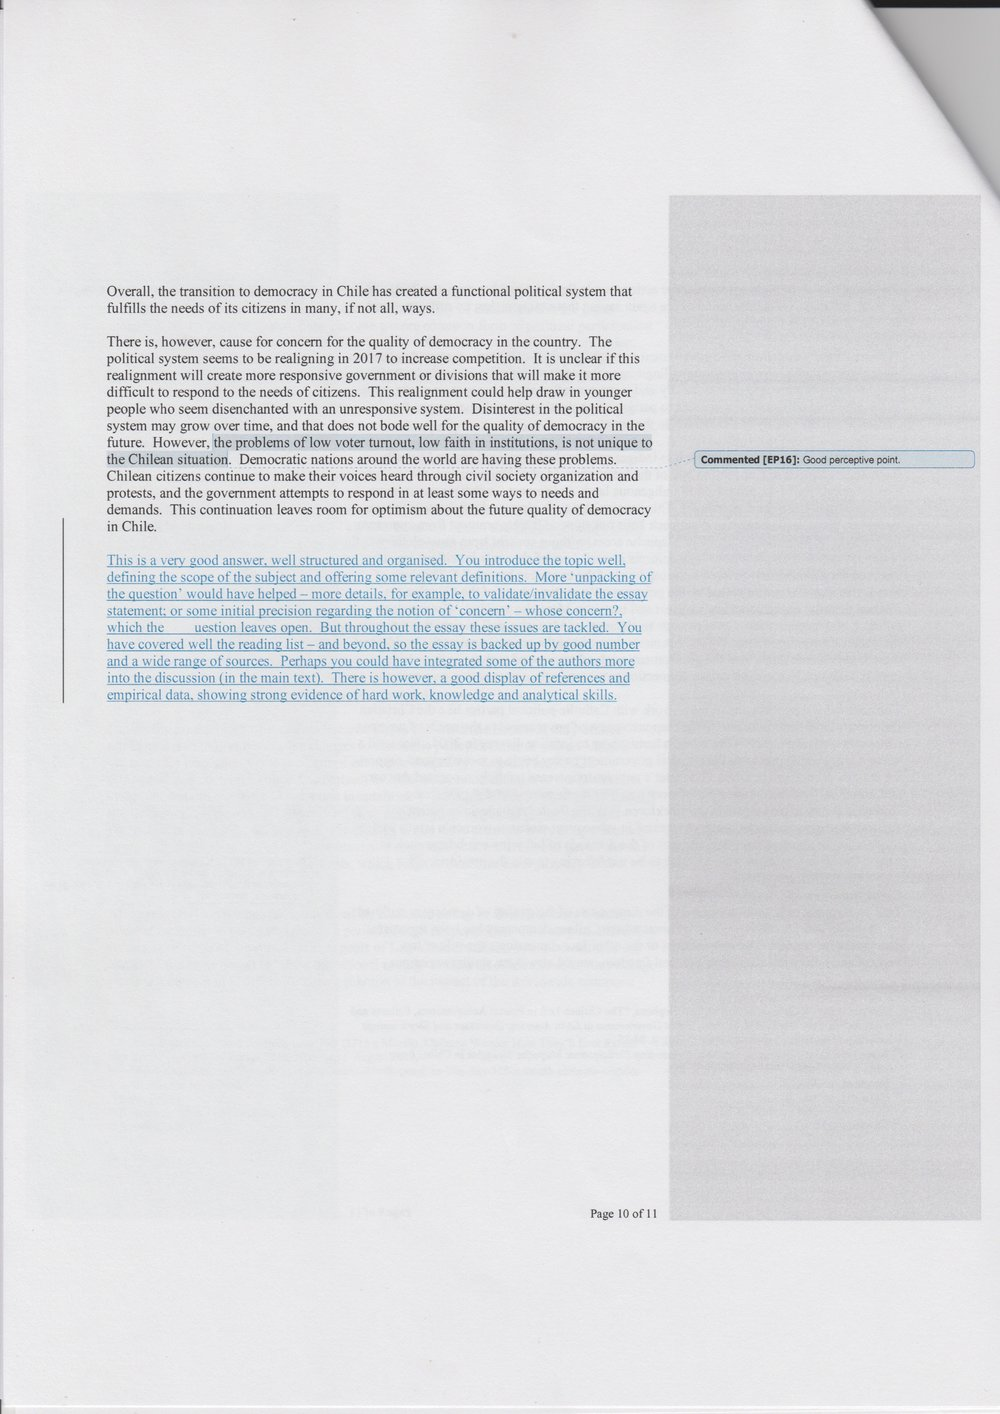 essay with comments_Page_3.jpg